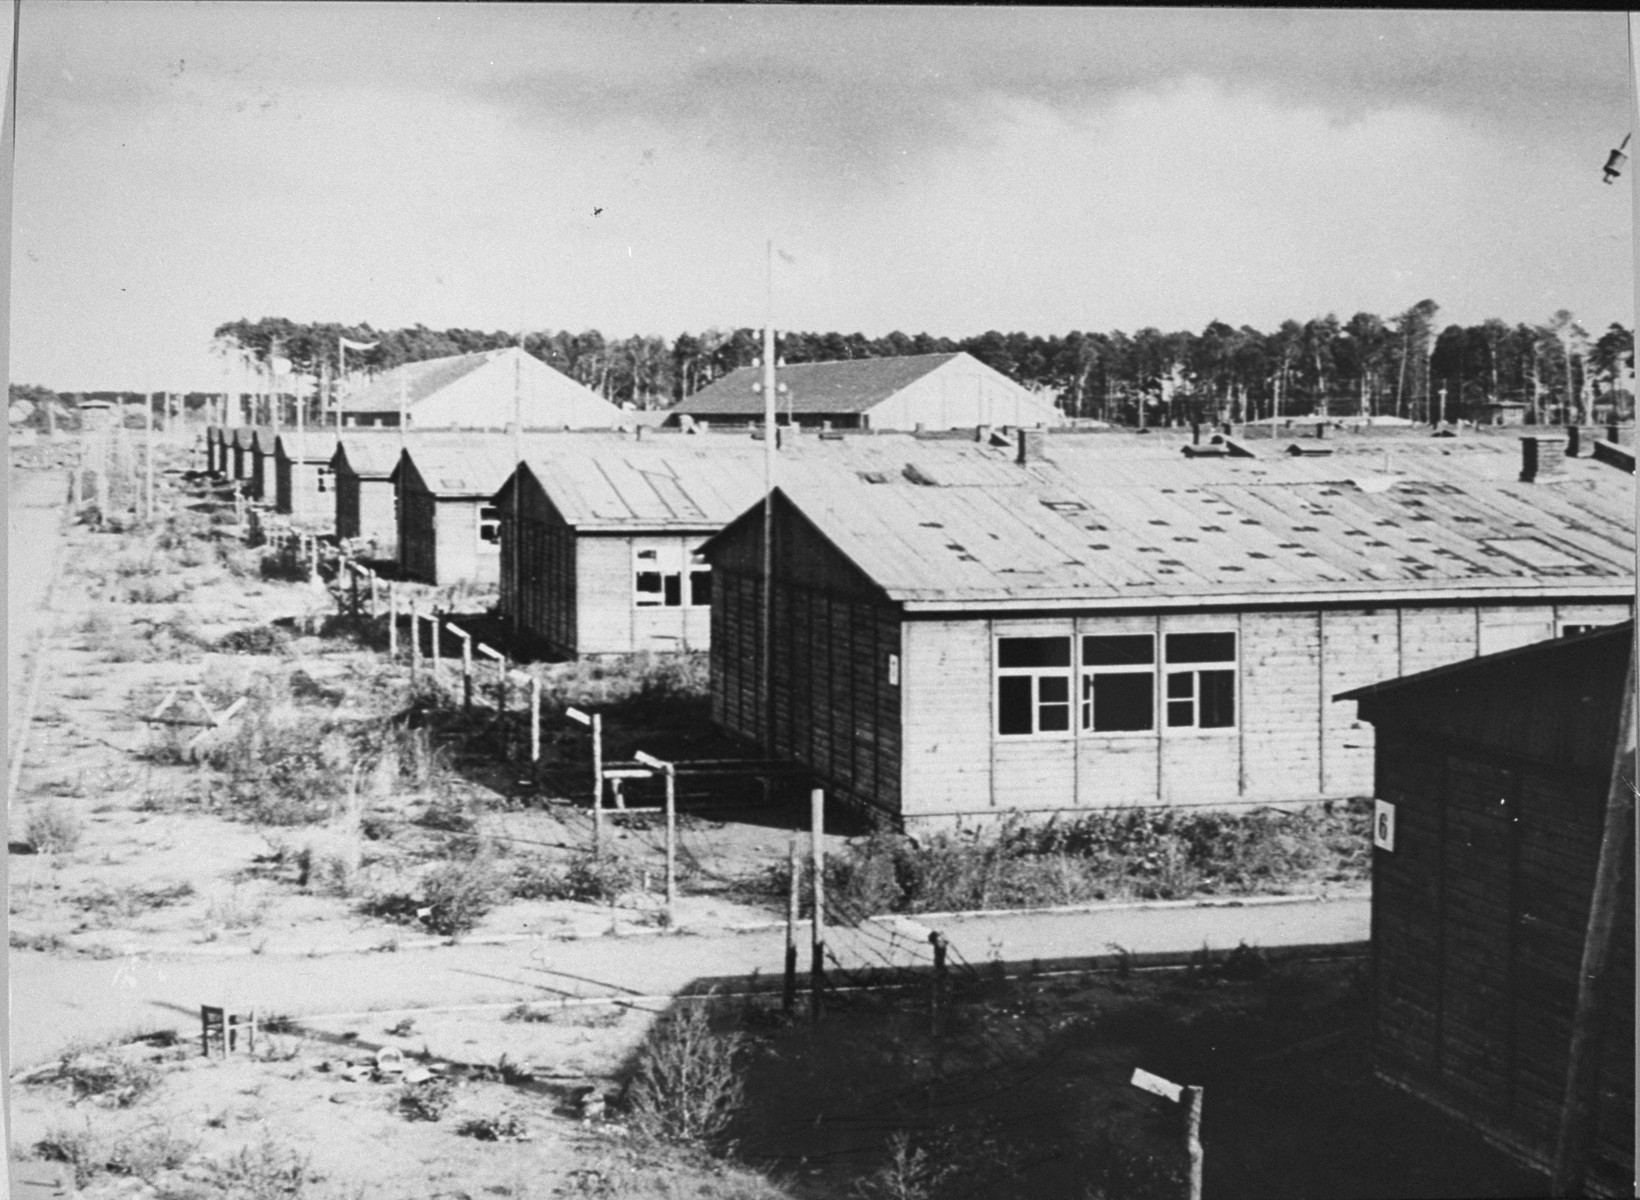 View of the Stutthof concentration camp after the liberation.